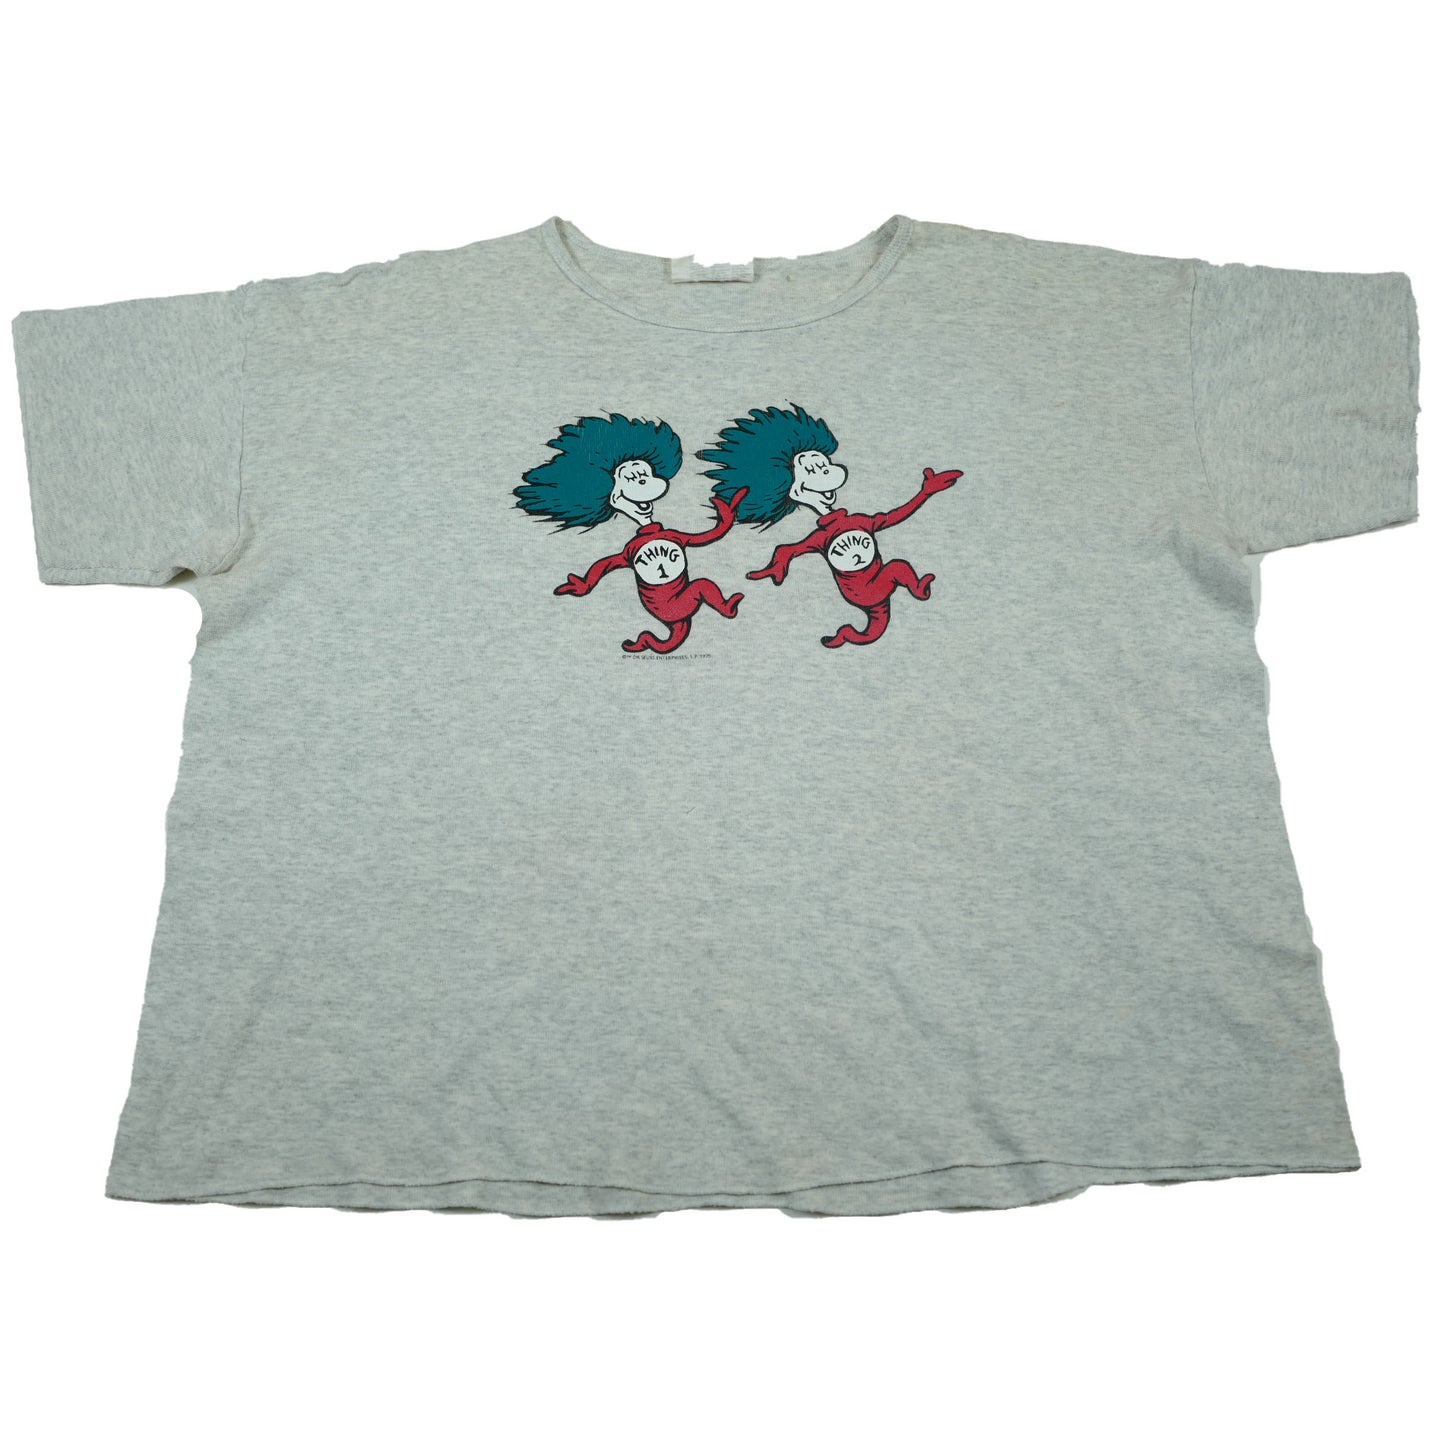 1995 Dr. Seuss Thing 1 and 2 Tee